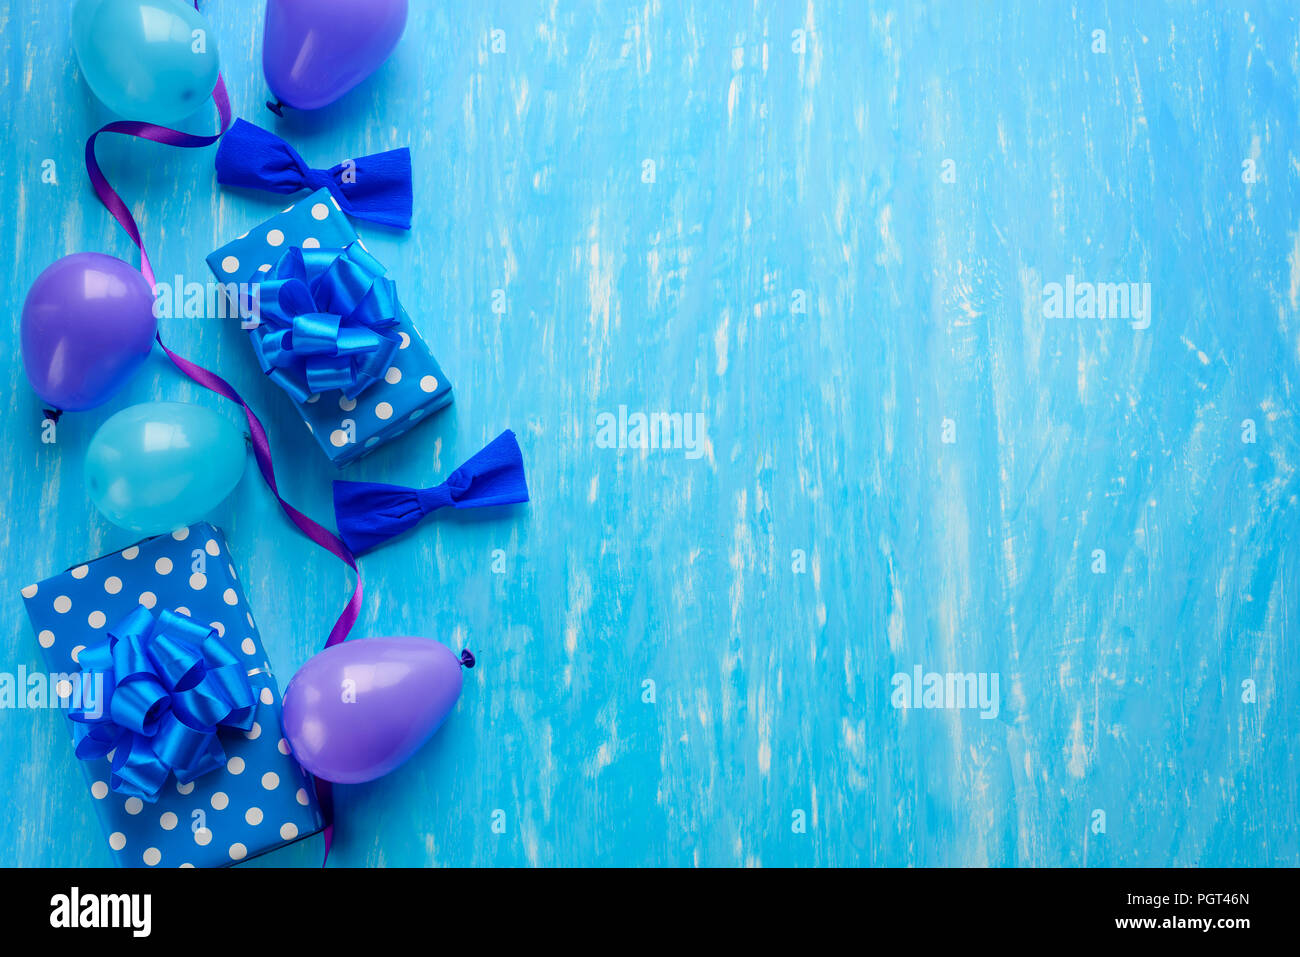 https www alamy com party invitation card template image216889085 html